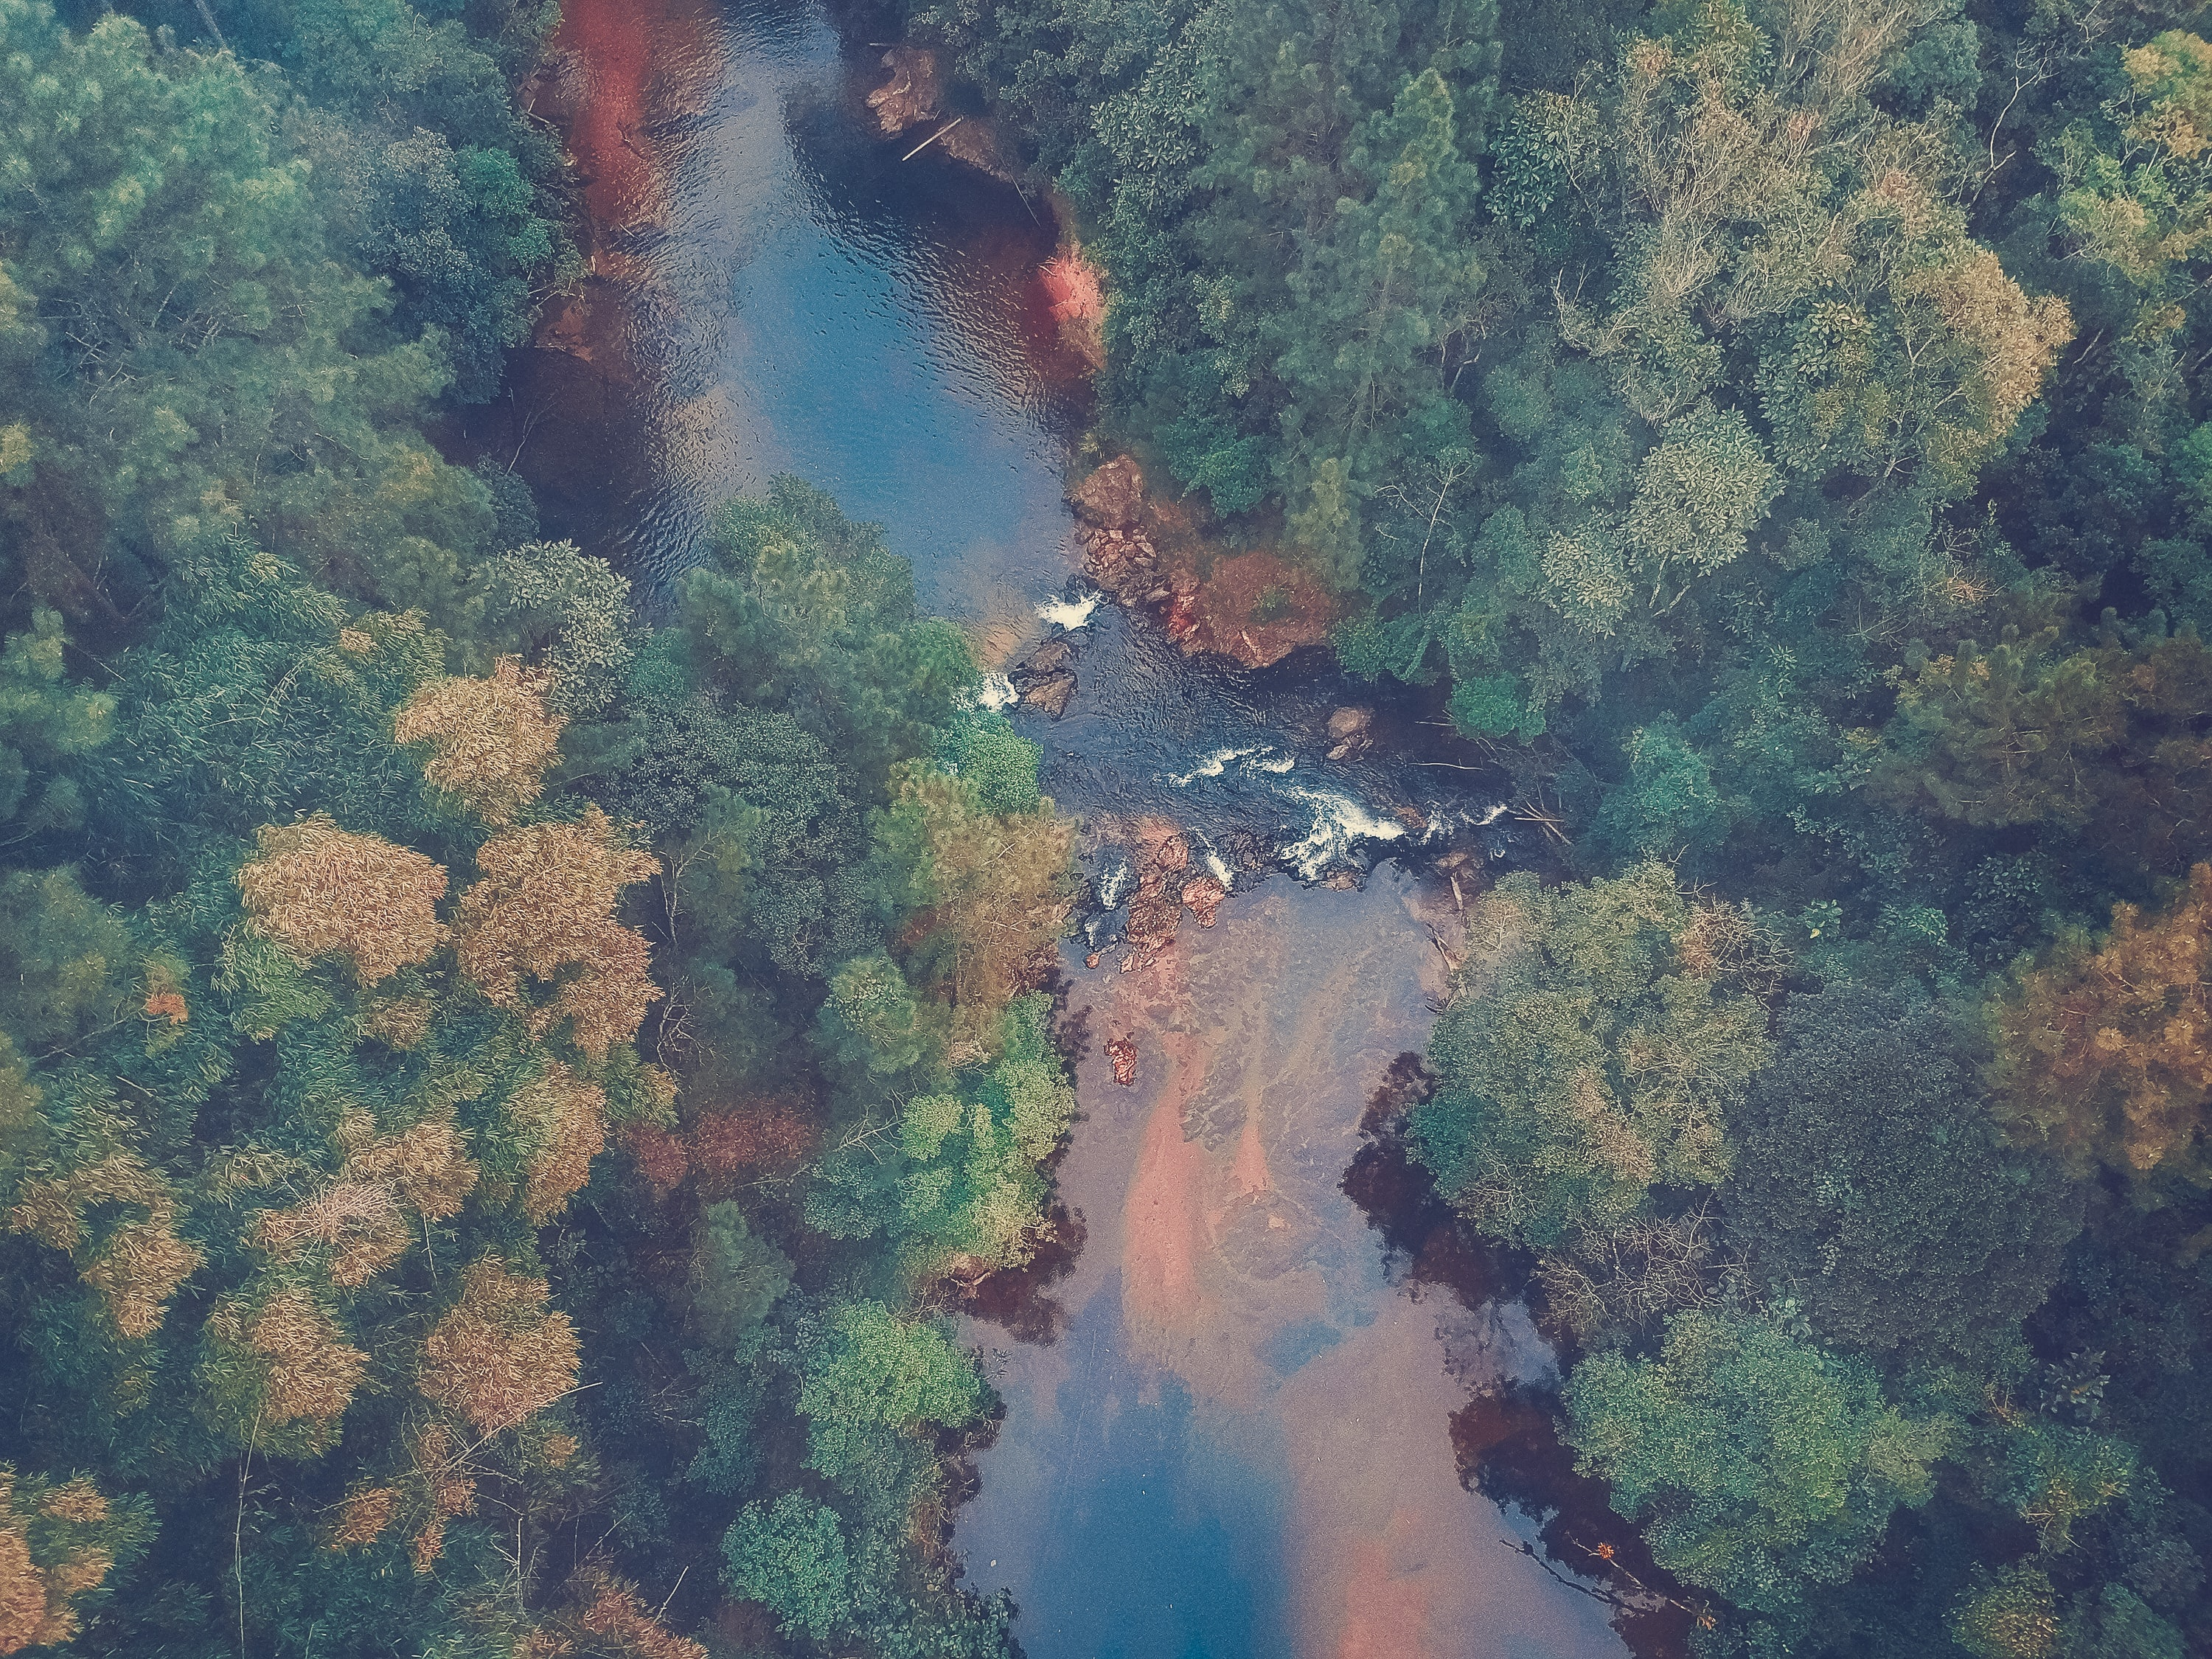 bird's-eye view photography of river flowing between trees